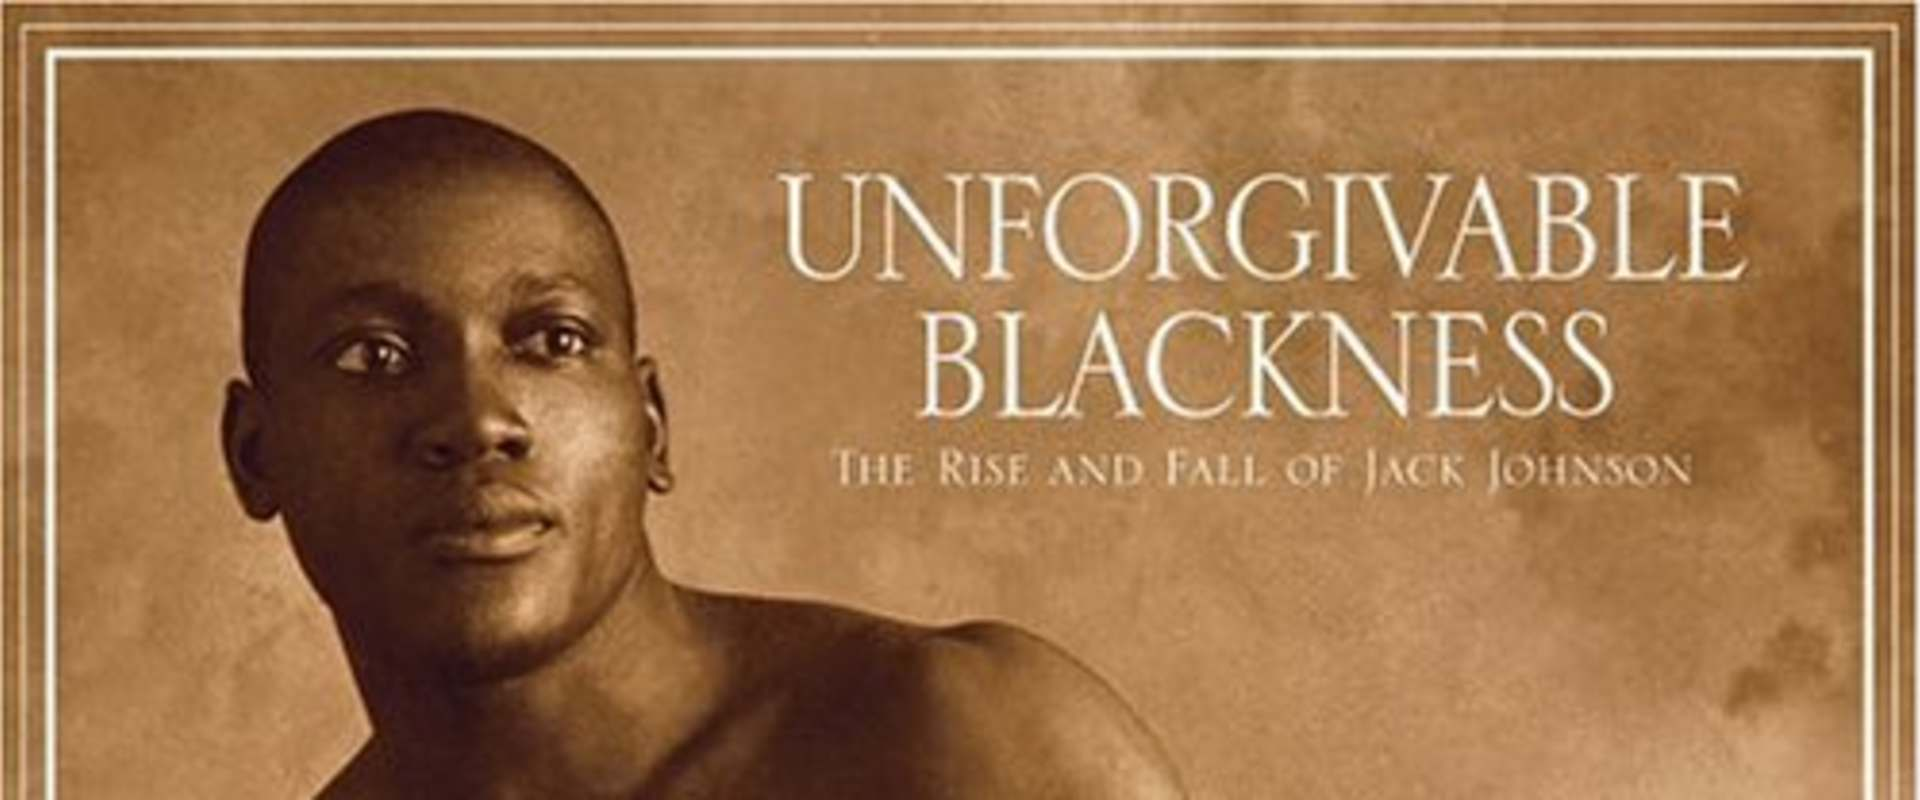 Unforgivable Blackness: The Rise and Fall of Jack Johnson background 2